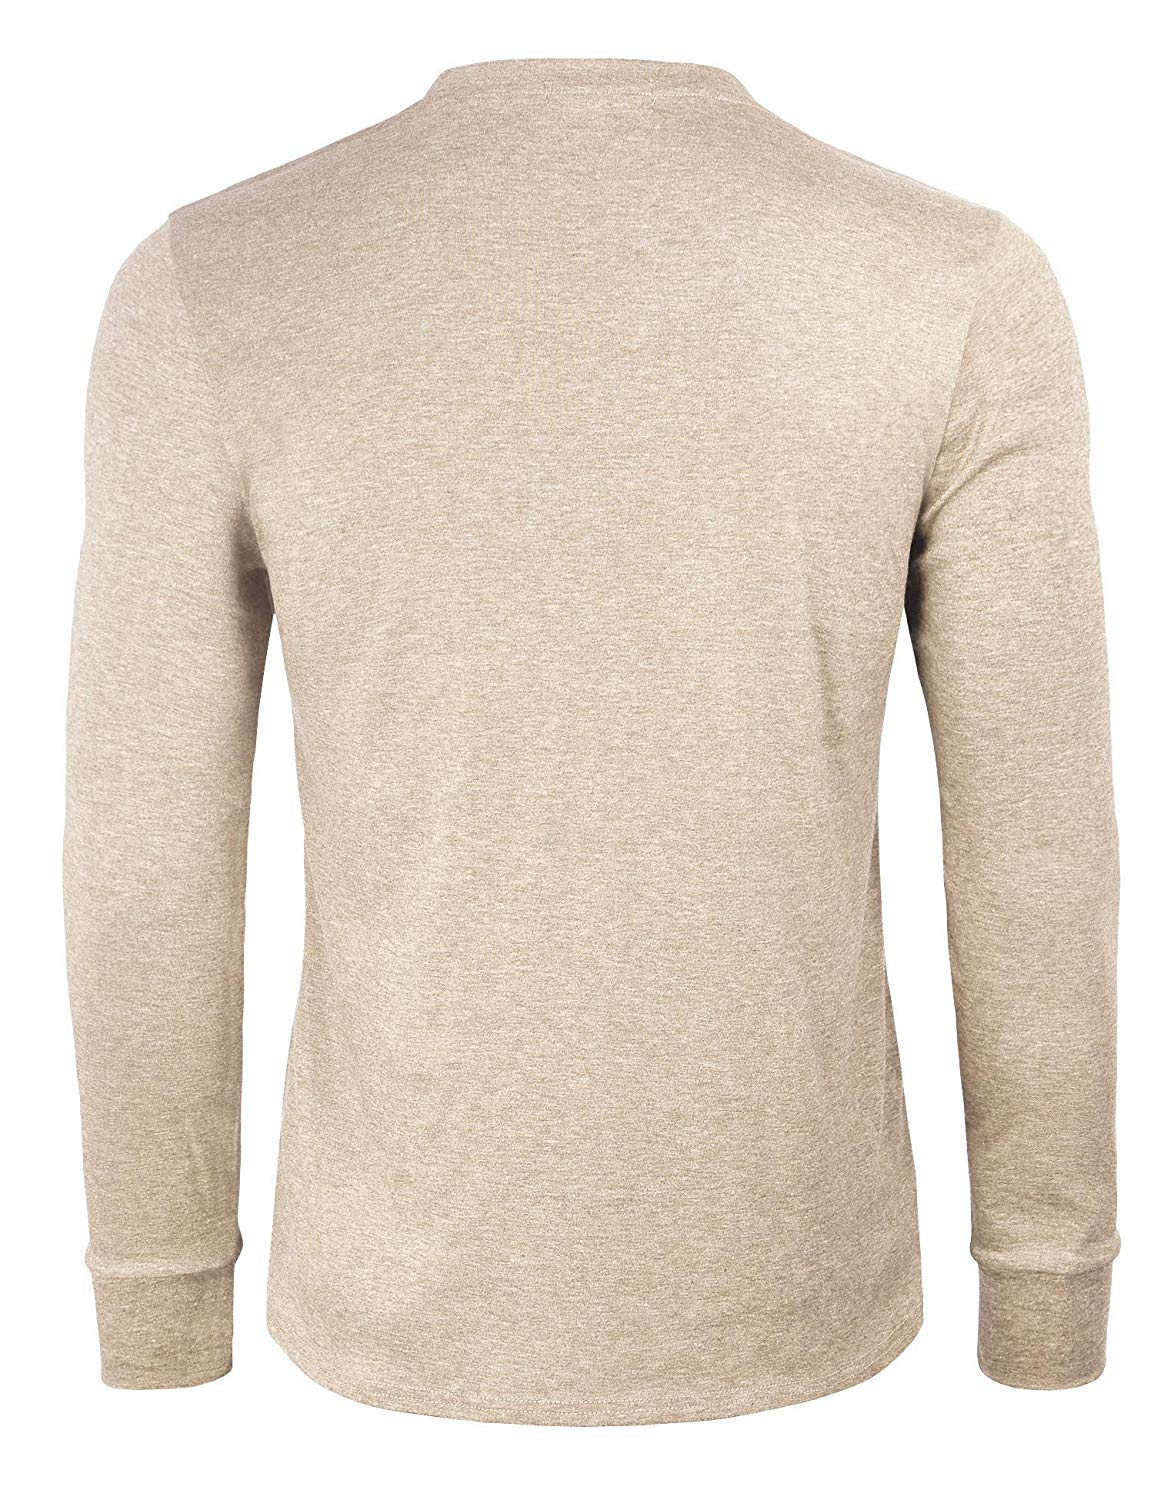 M220100 Men's Cotton Casual Long Sleeve Lightweight Basic Thermal T Shirts - 3